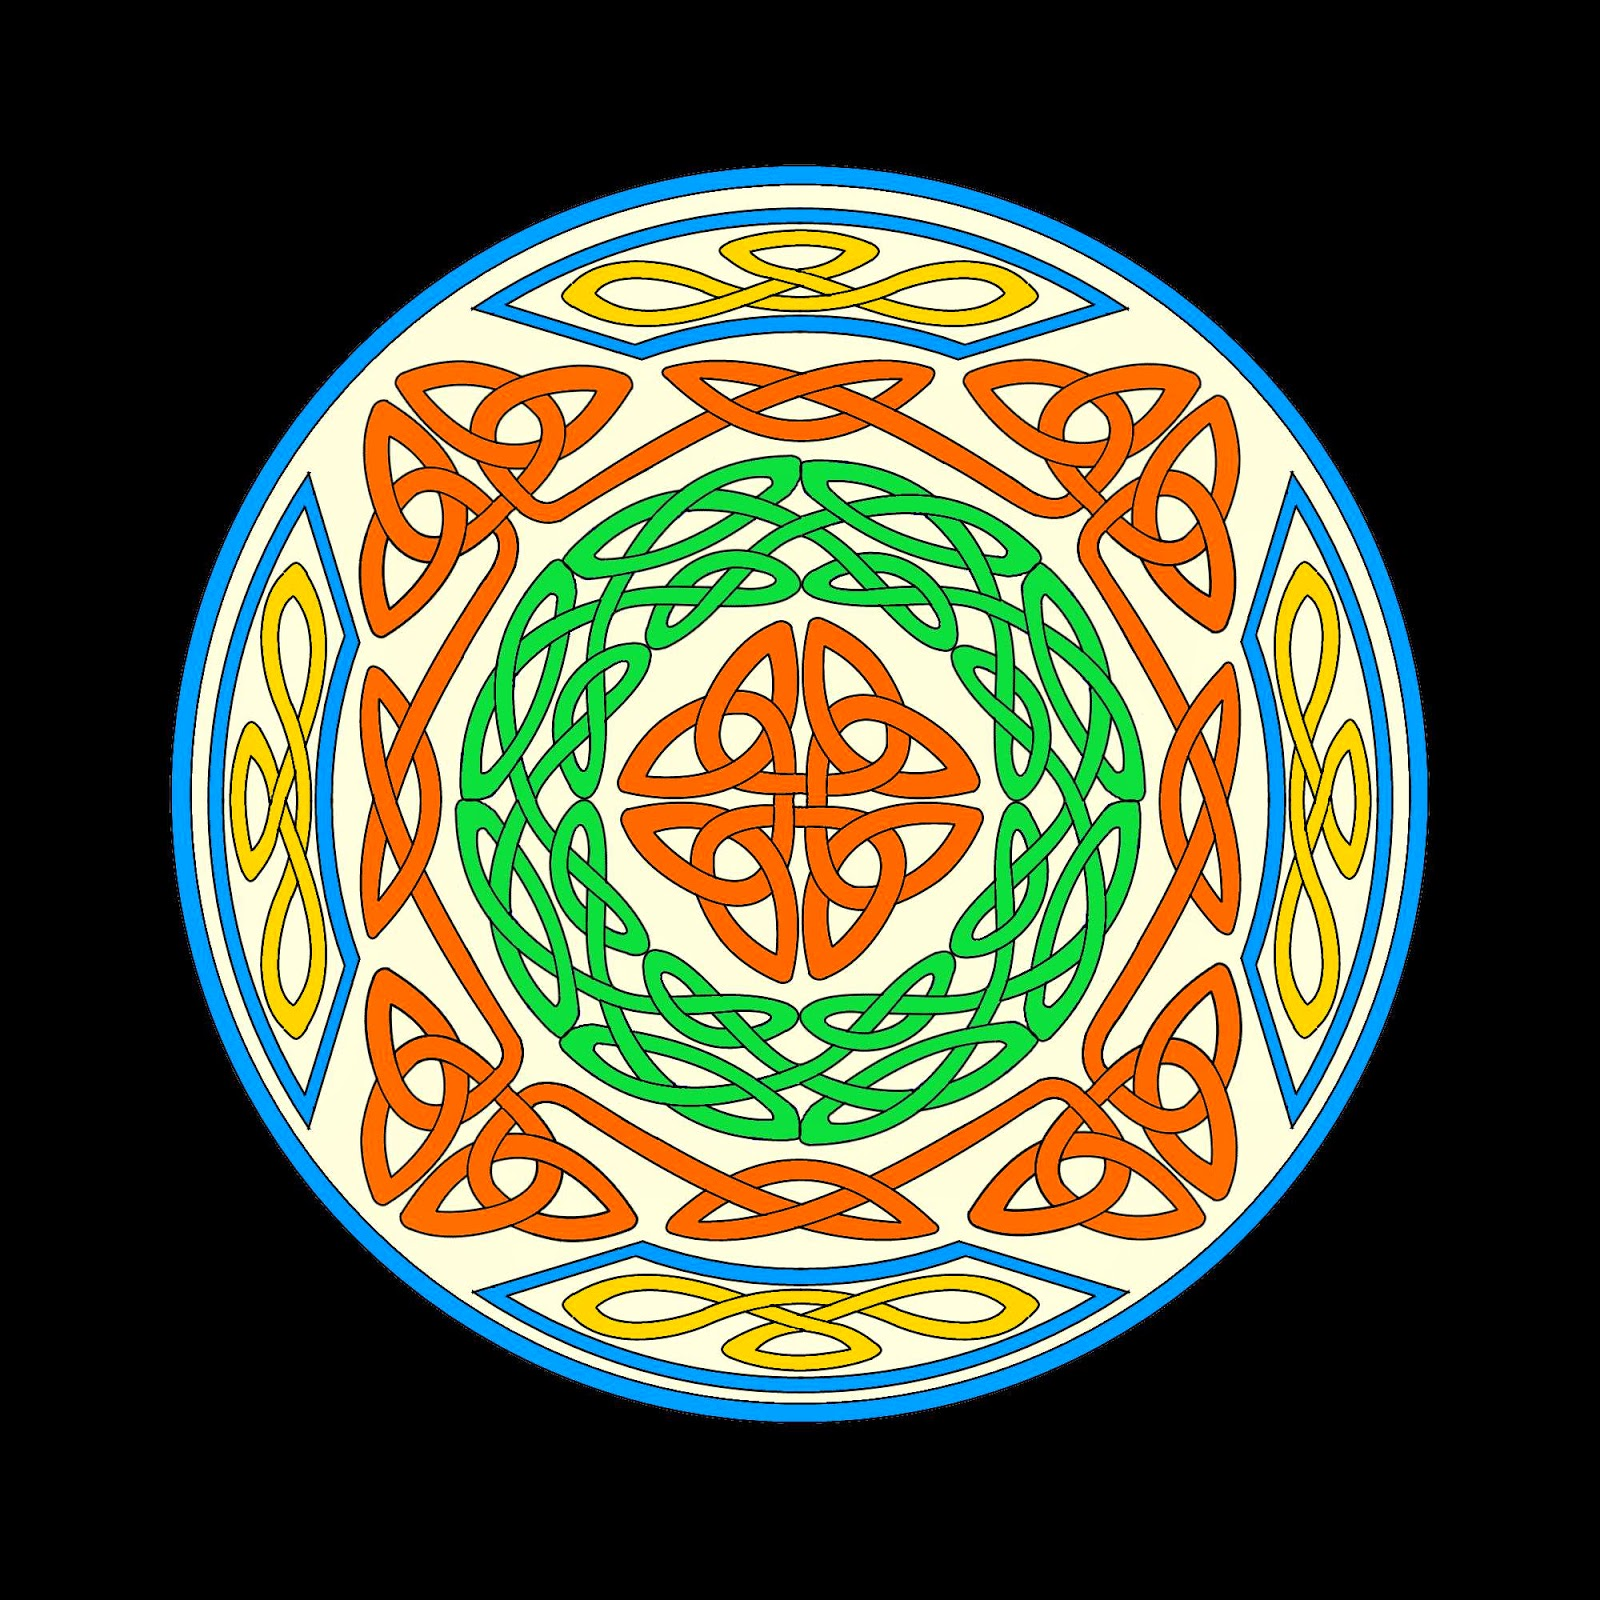 Celtic mandala in red, green, blue and yellow with central design surrounded by bands of celtic knotwork